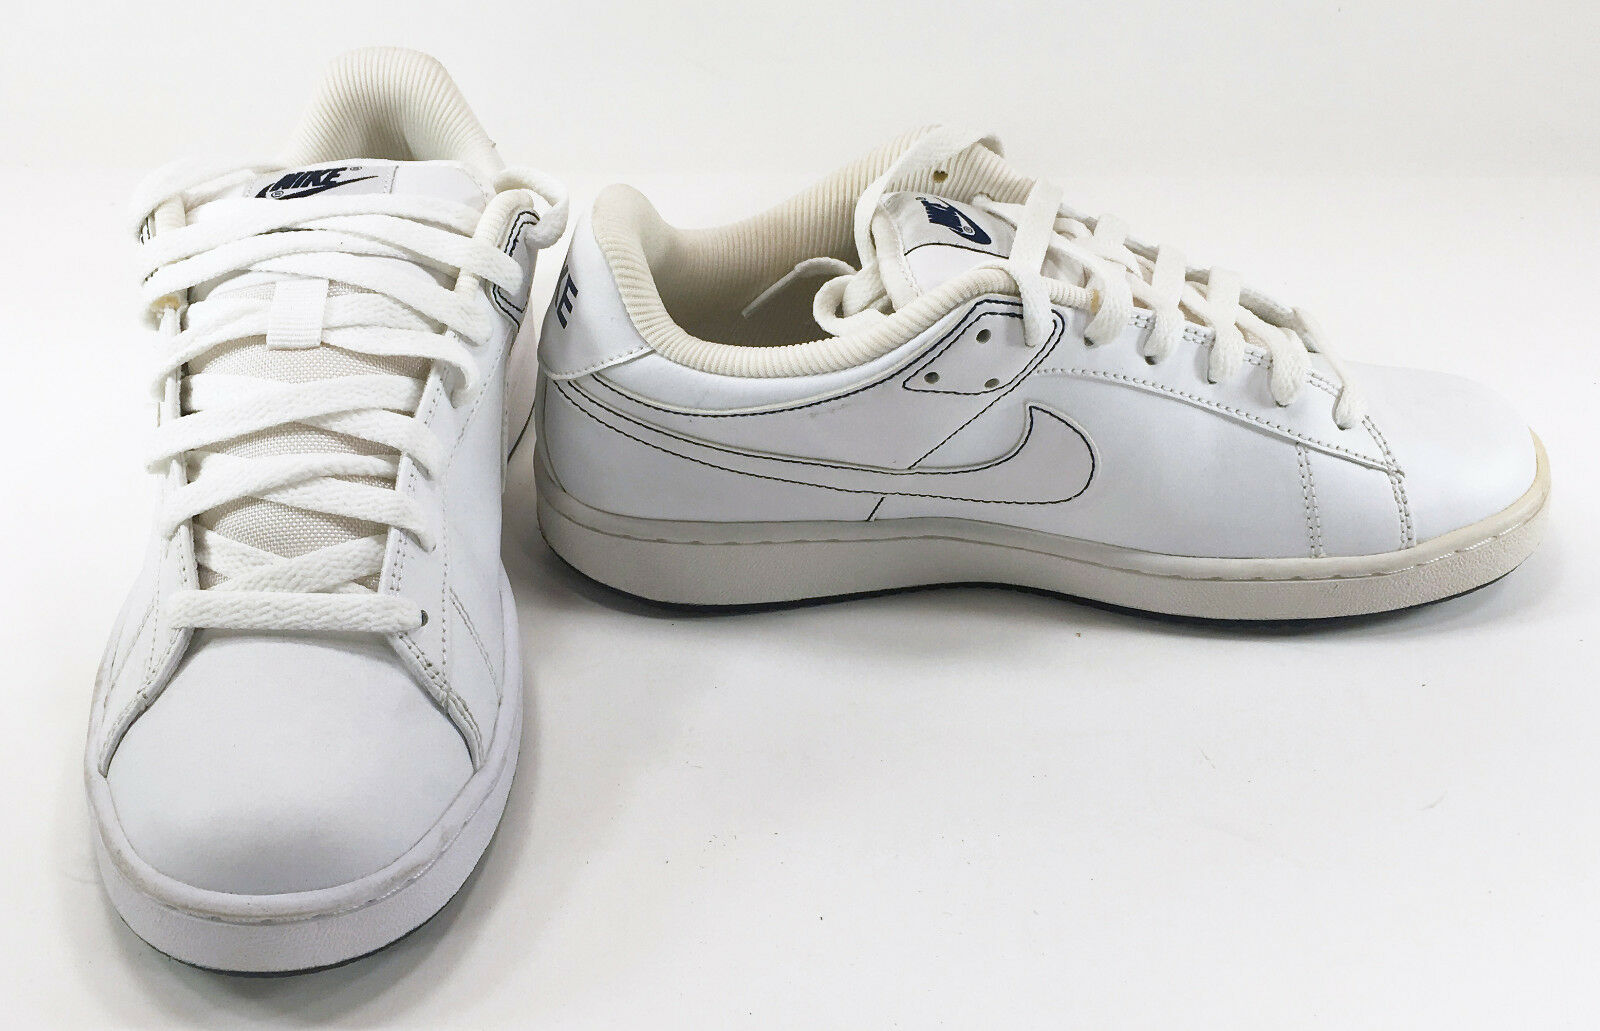 Nike Shoes Santa Cruise Lo White Sneakers Comfortable Wild casual shoes